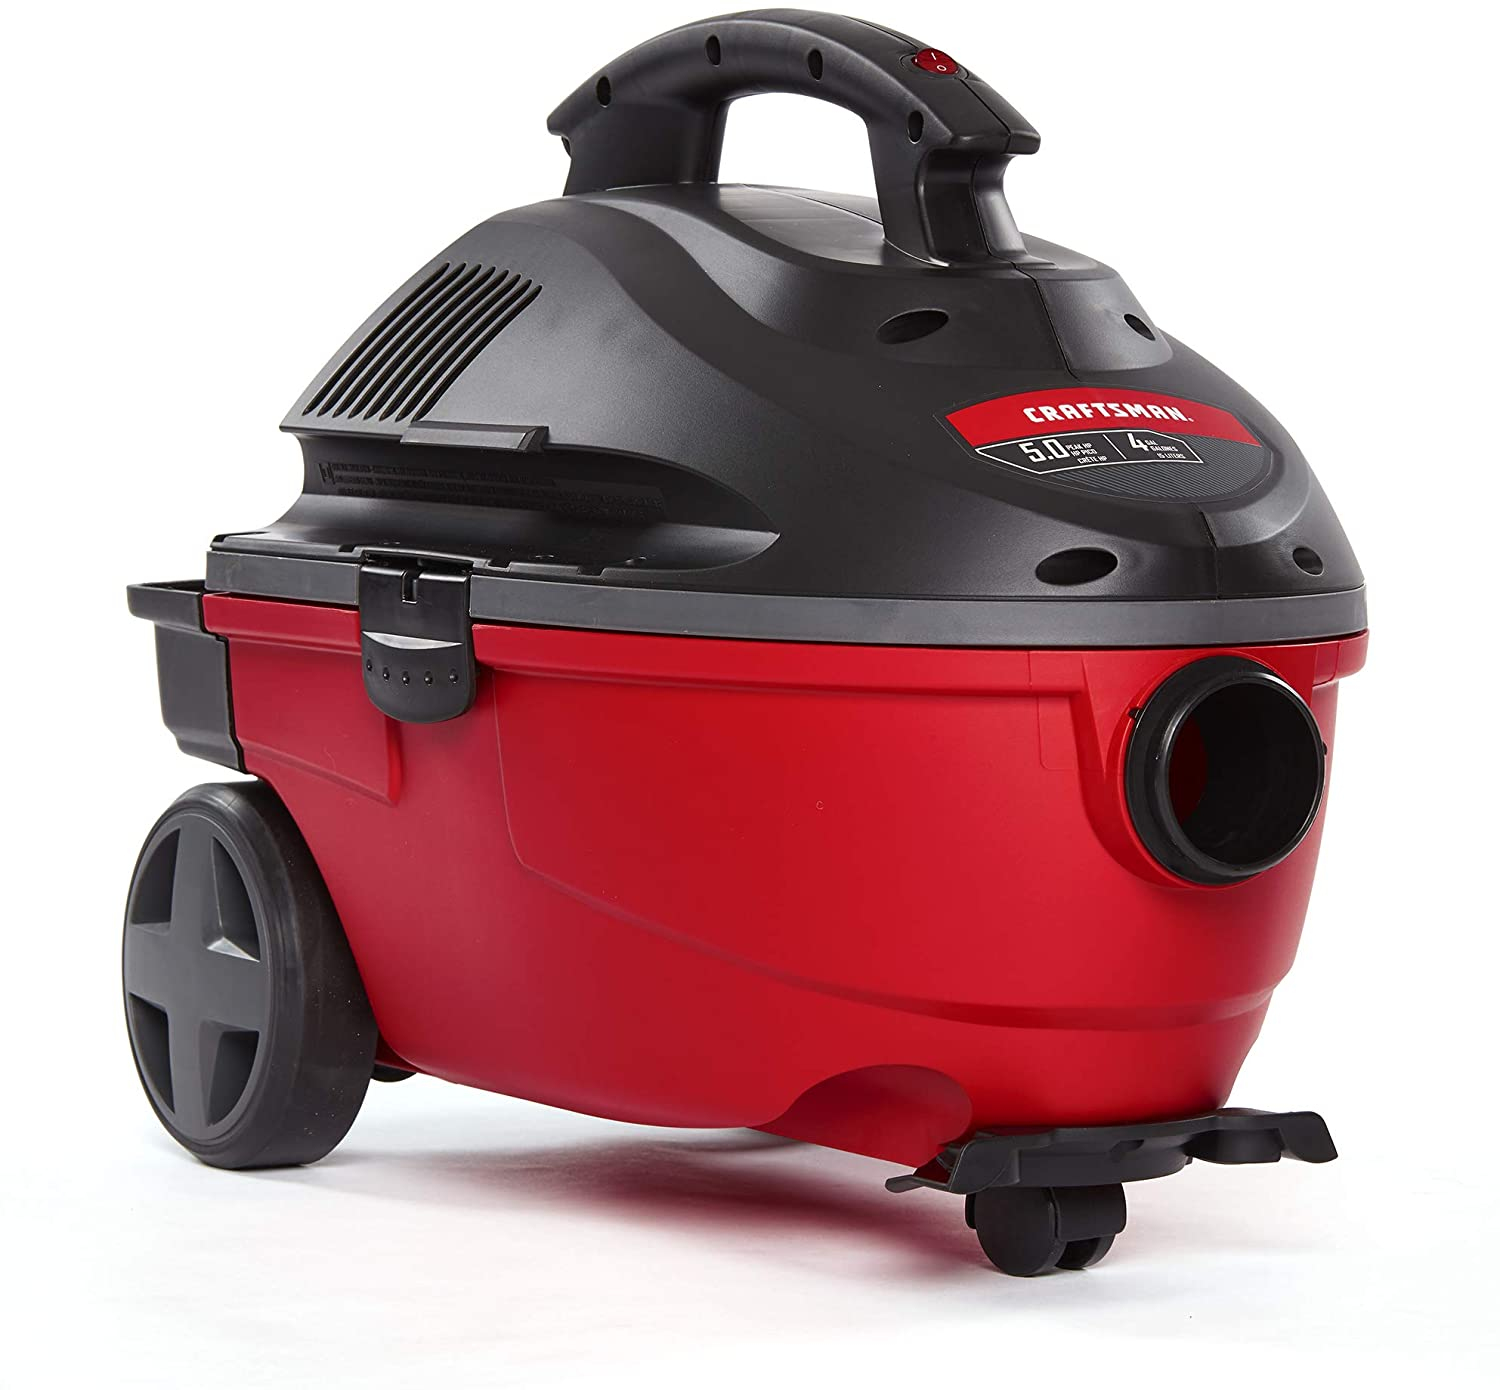 CRAFTSMAN 17612 Wet Dry Vac